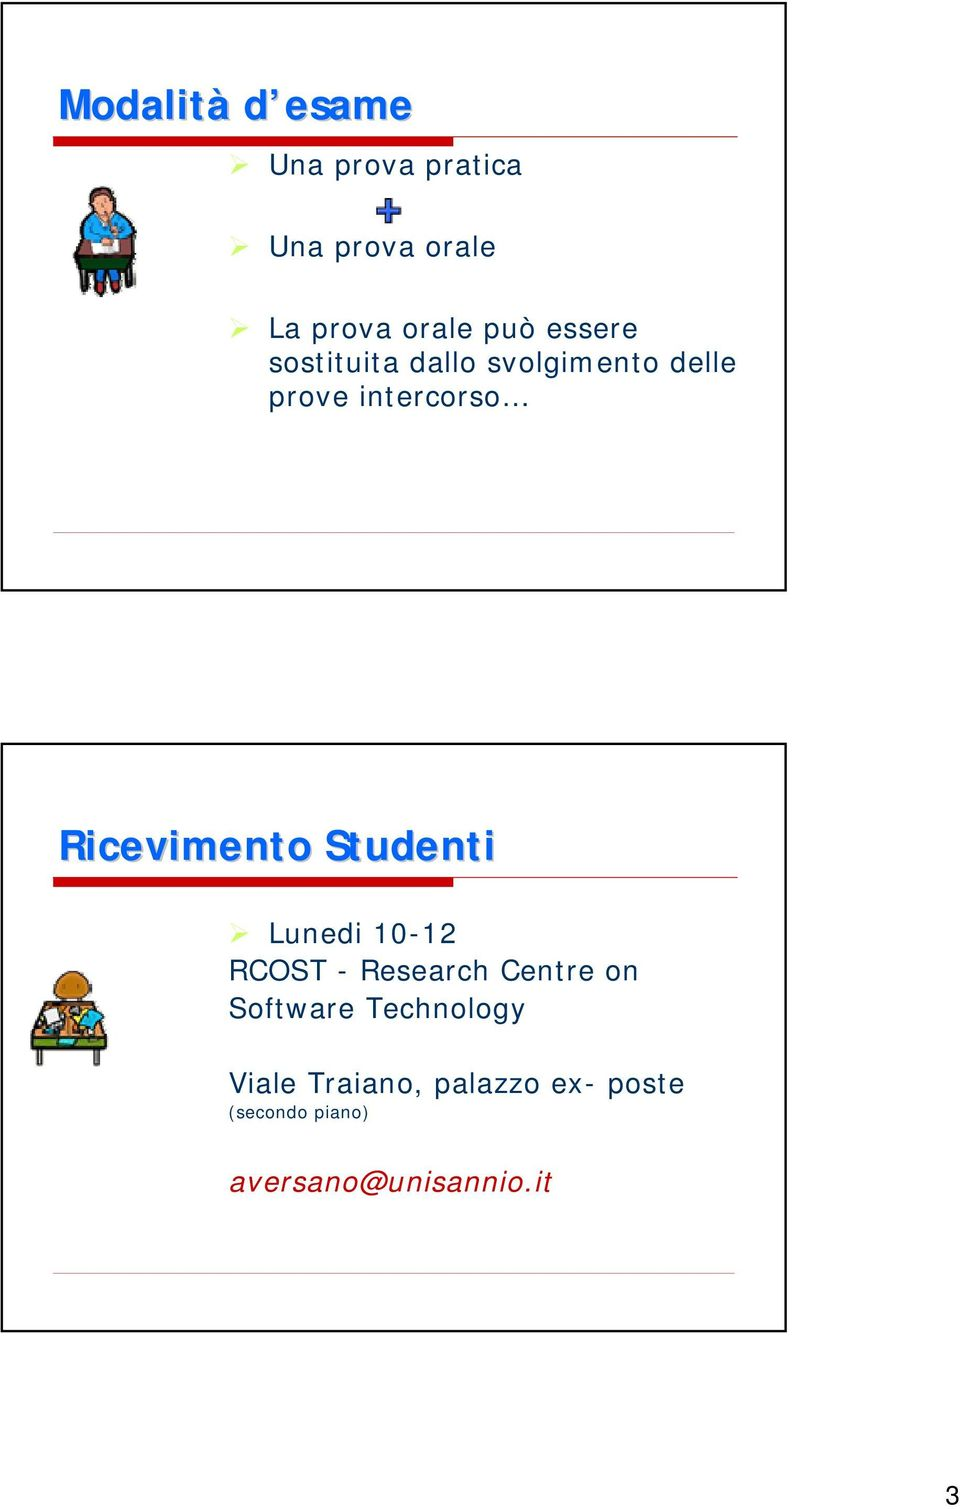 Studenti Lunedi 10-12 RCOST - Research Centre on Software Technology